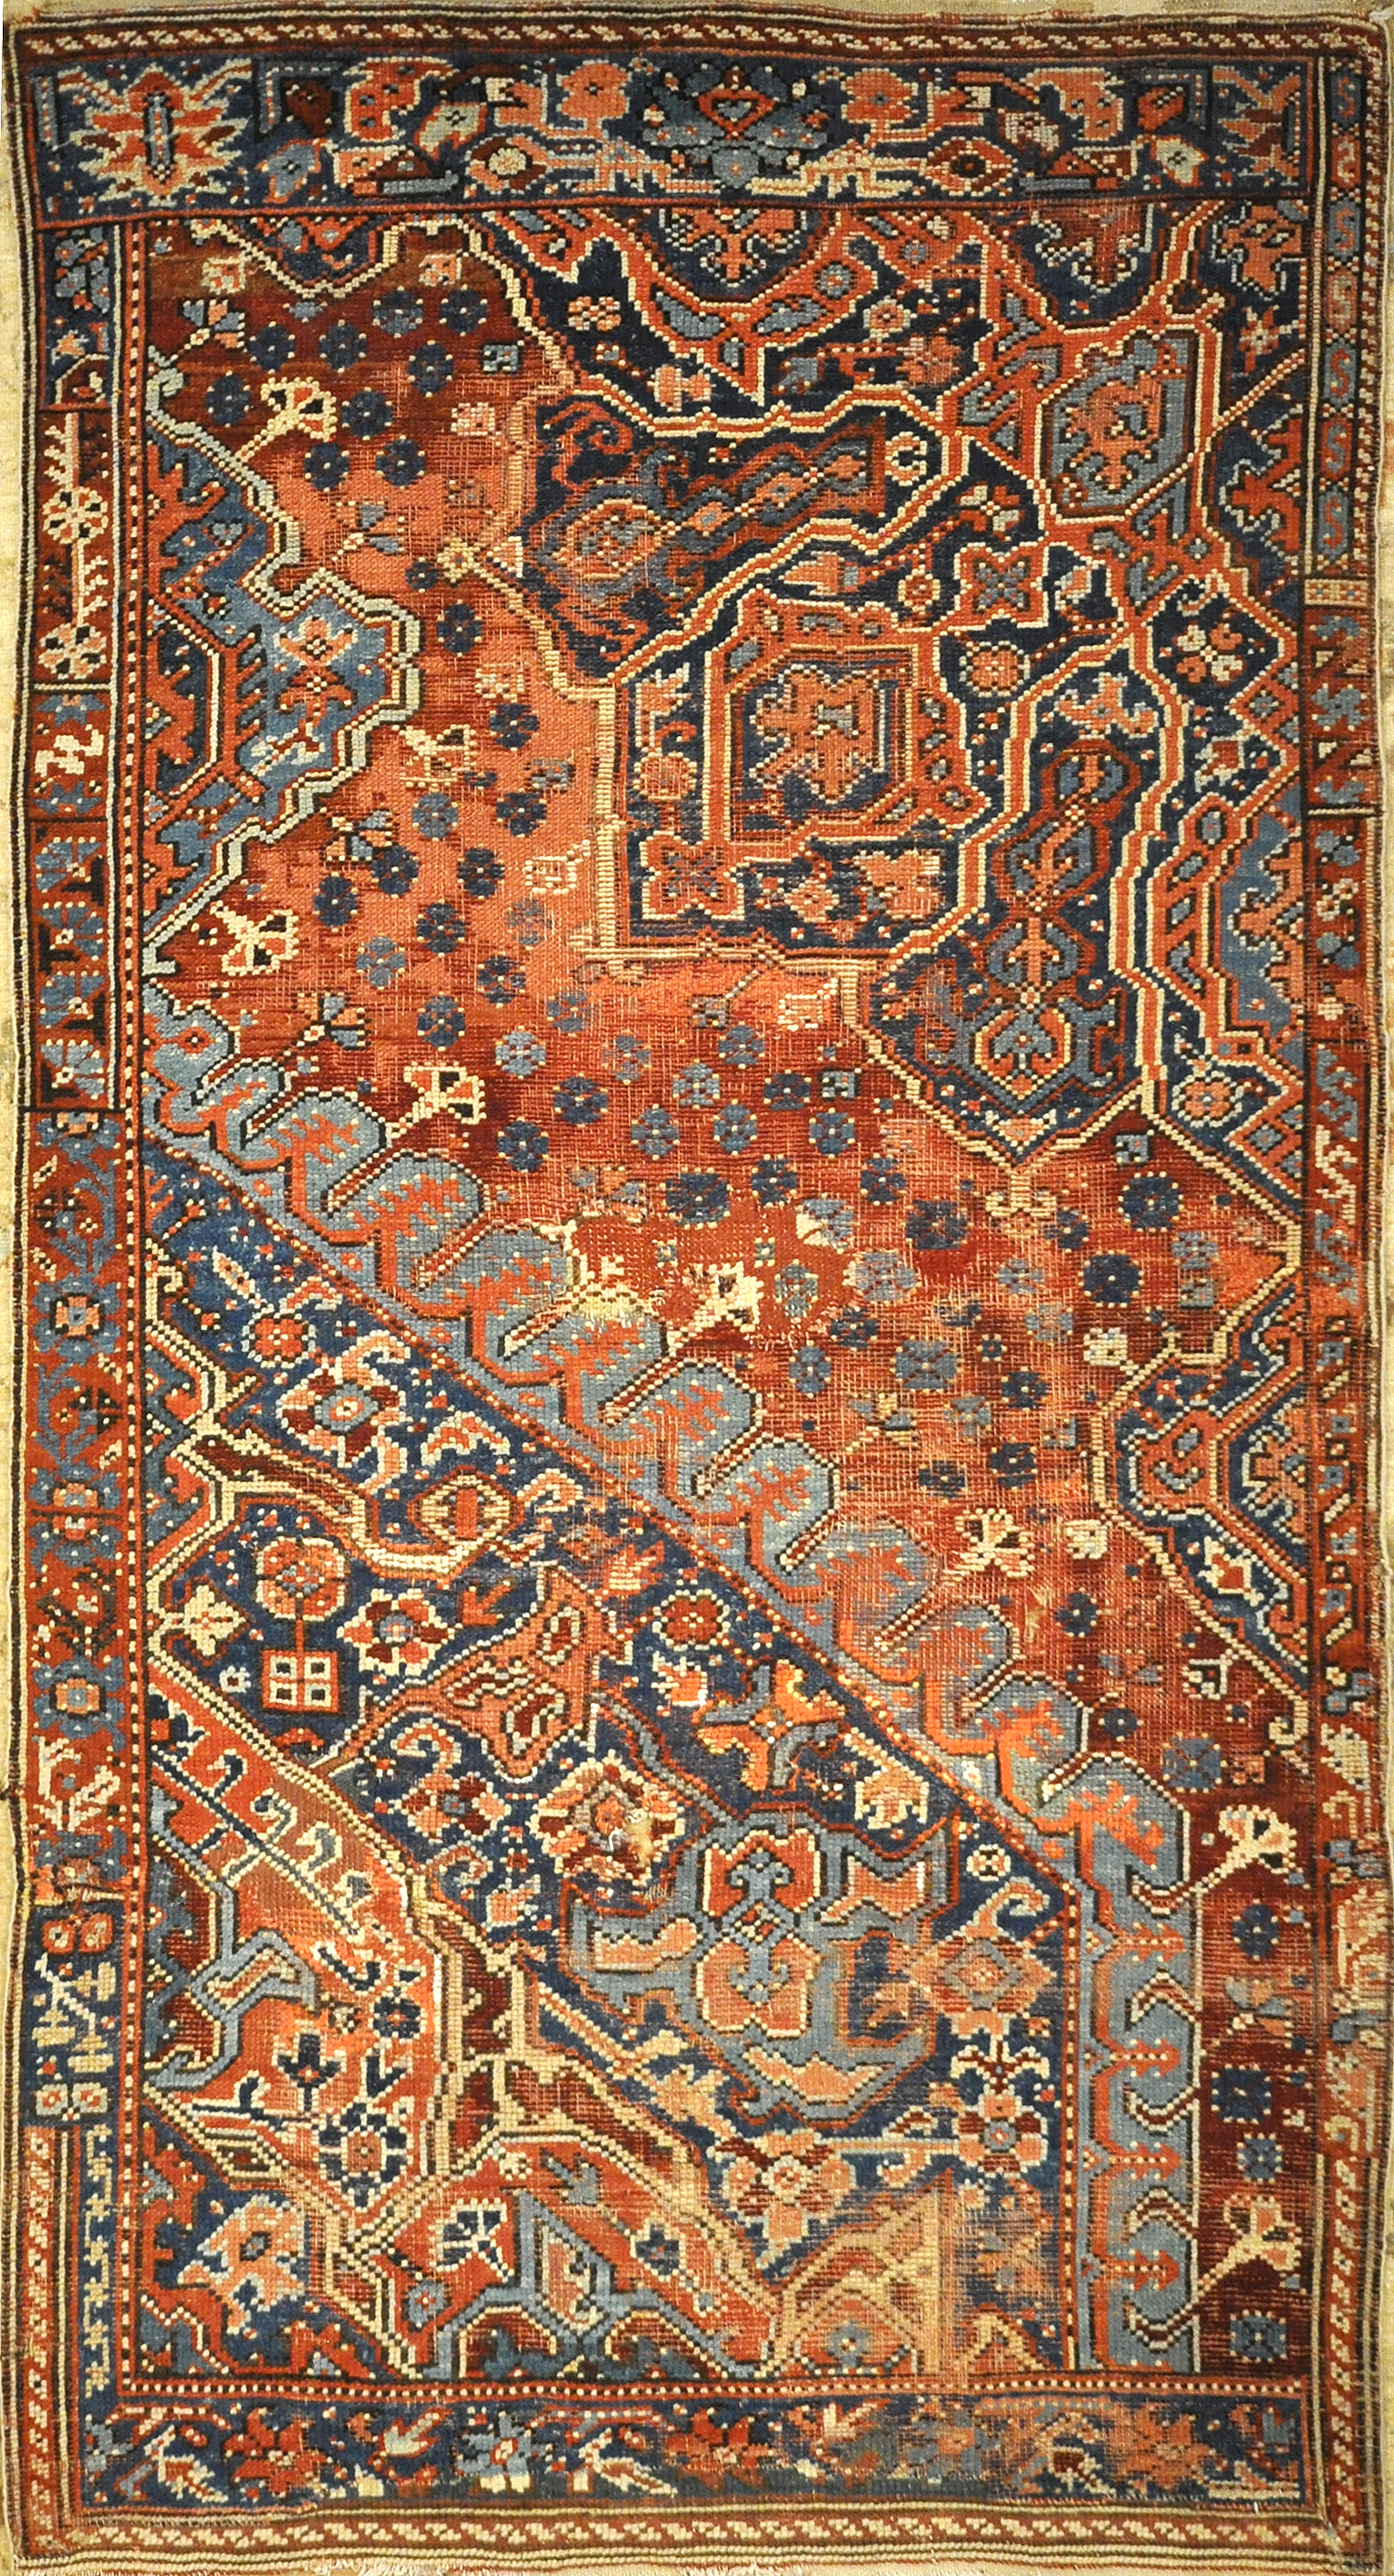 Rare Antique Sampler Oushak from 17th Century. A piece of genuine authentic woven carpet art sold by Santa Barbara Design Center, Rugs and More.